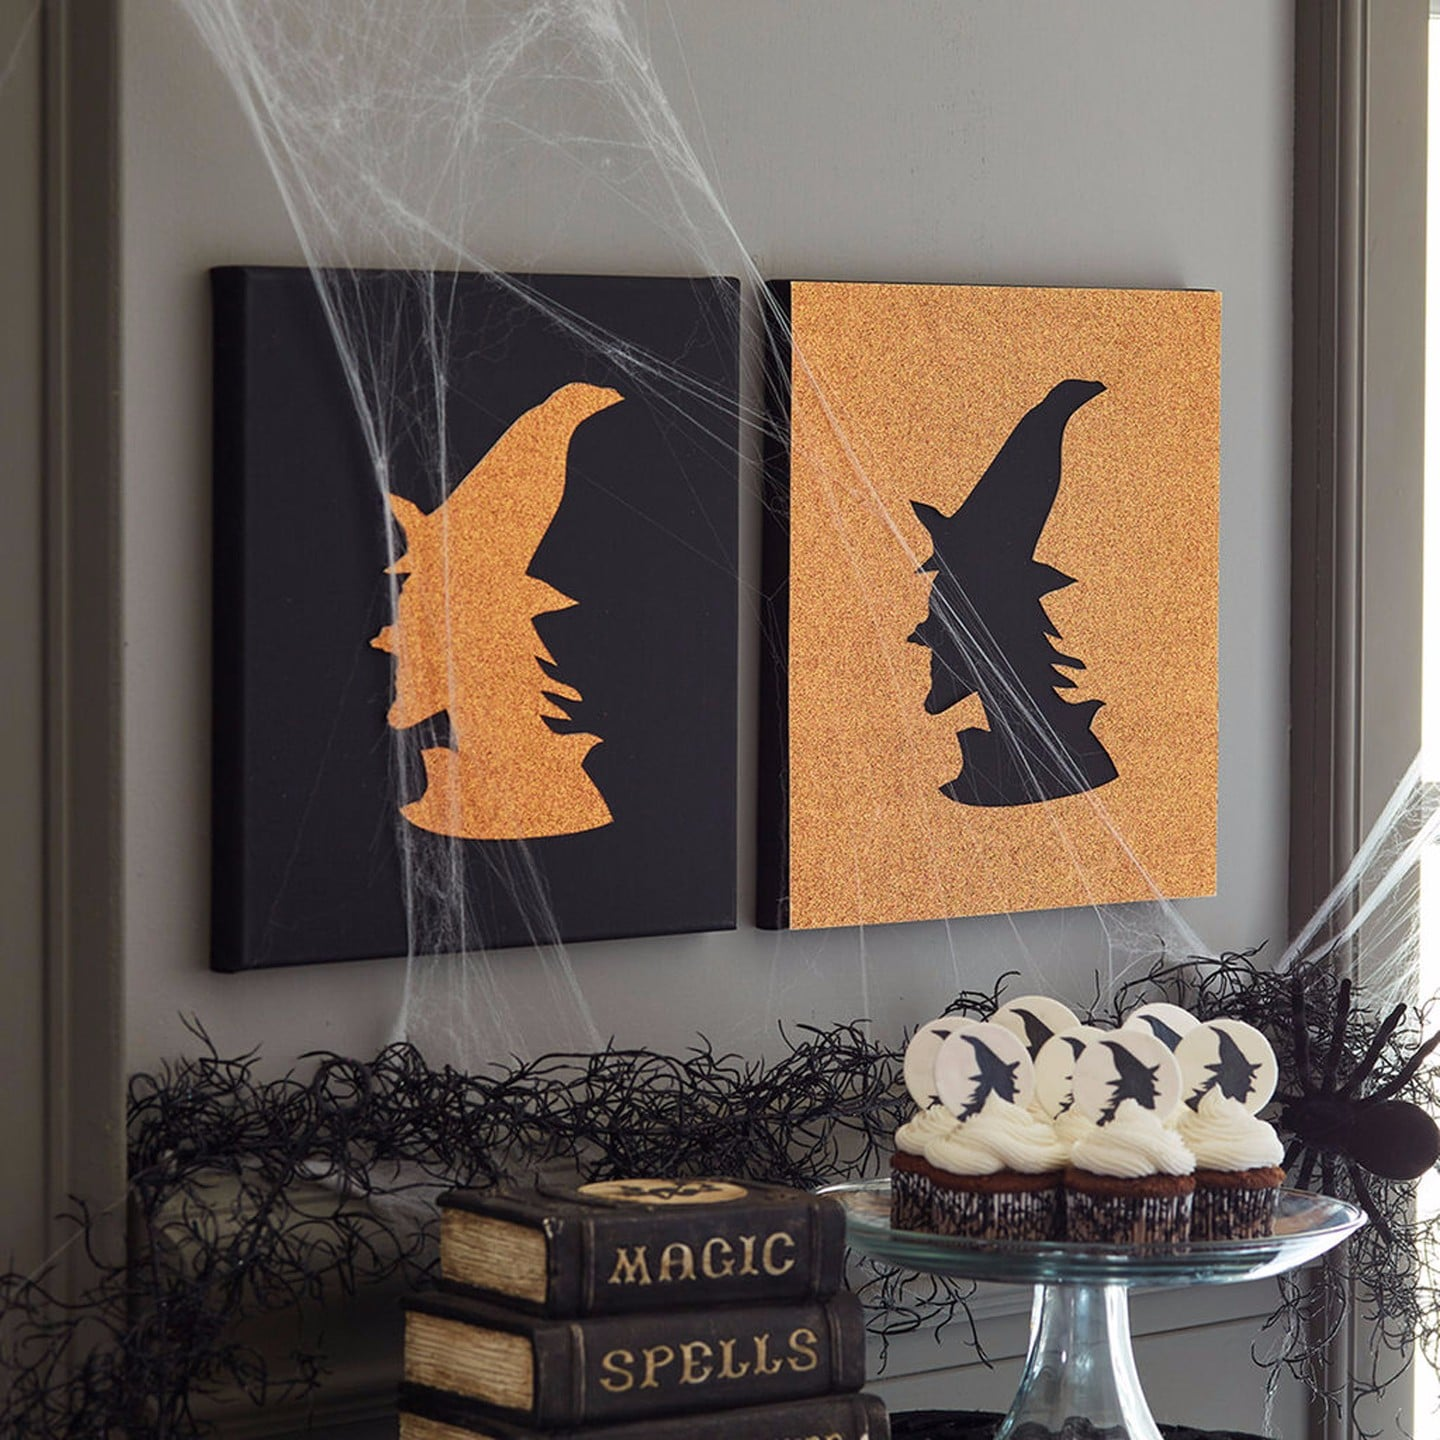 michaels halloween decorations 2017 popsugar smart living - Wwwhalloween Decorations